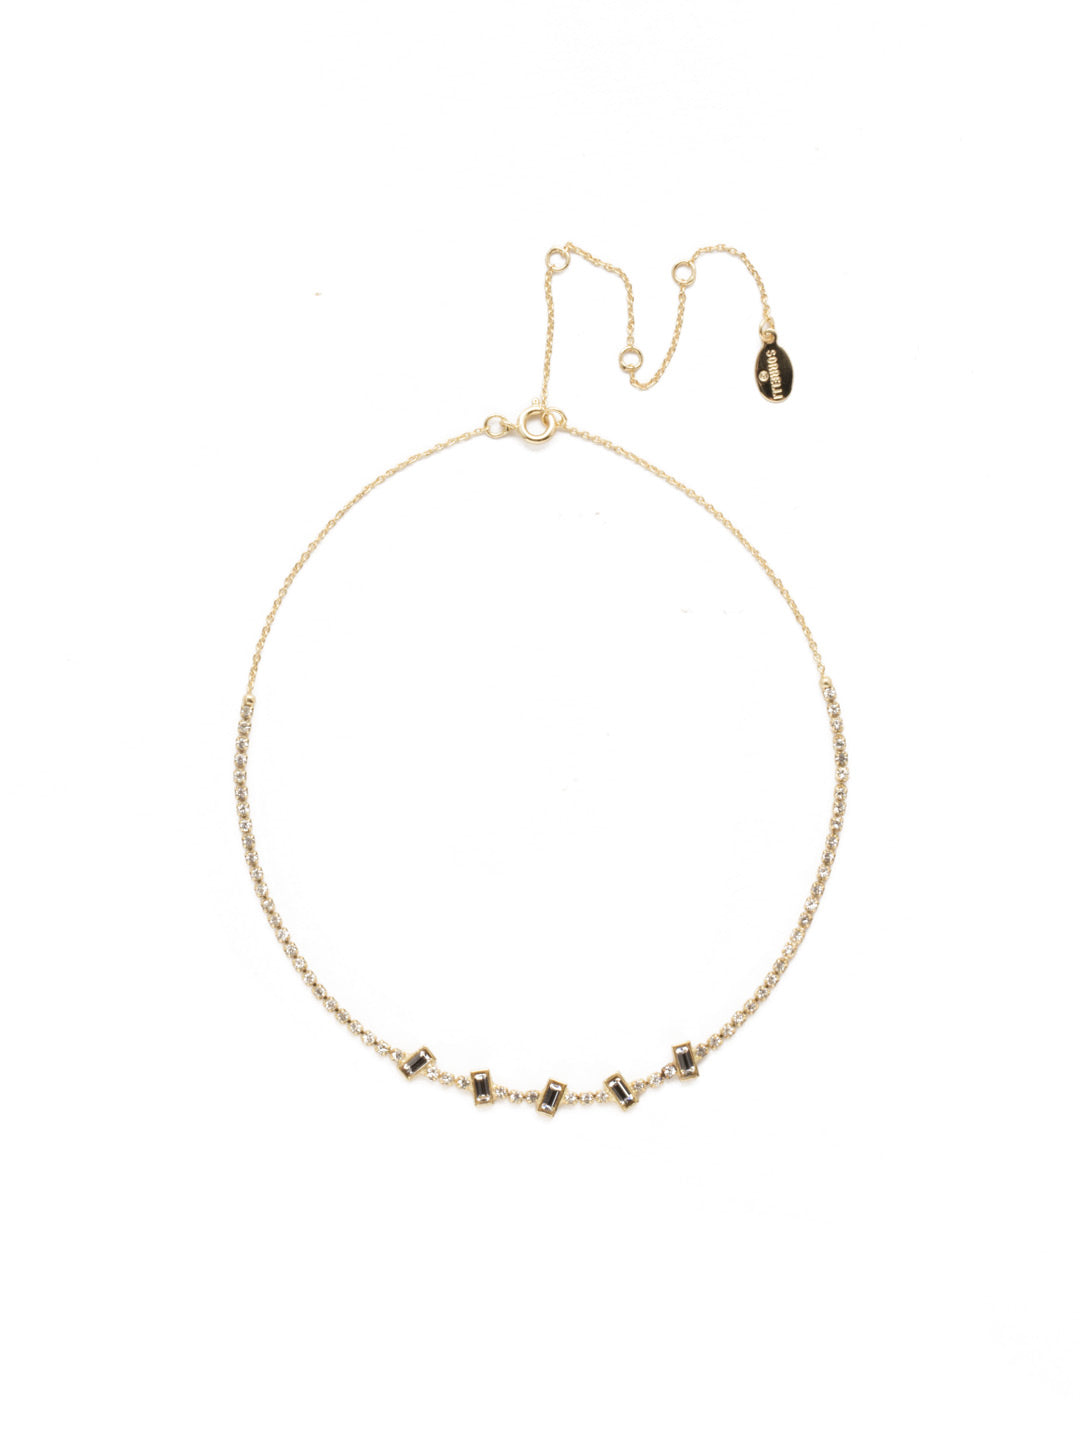 Circadian Crystal Tennis Necklace - 4NEK39BGCRY